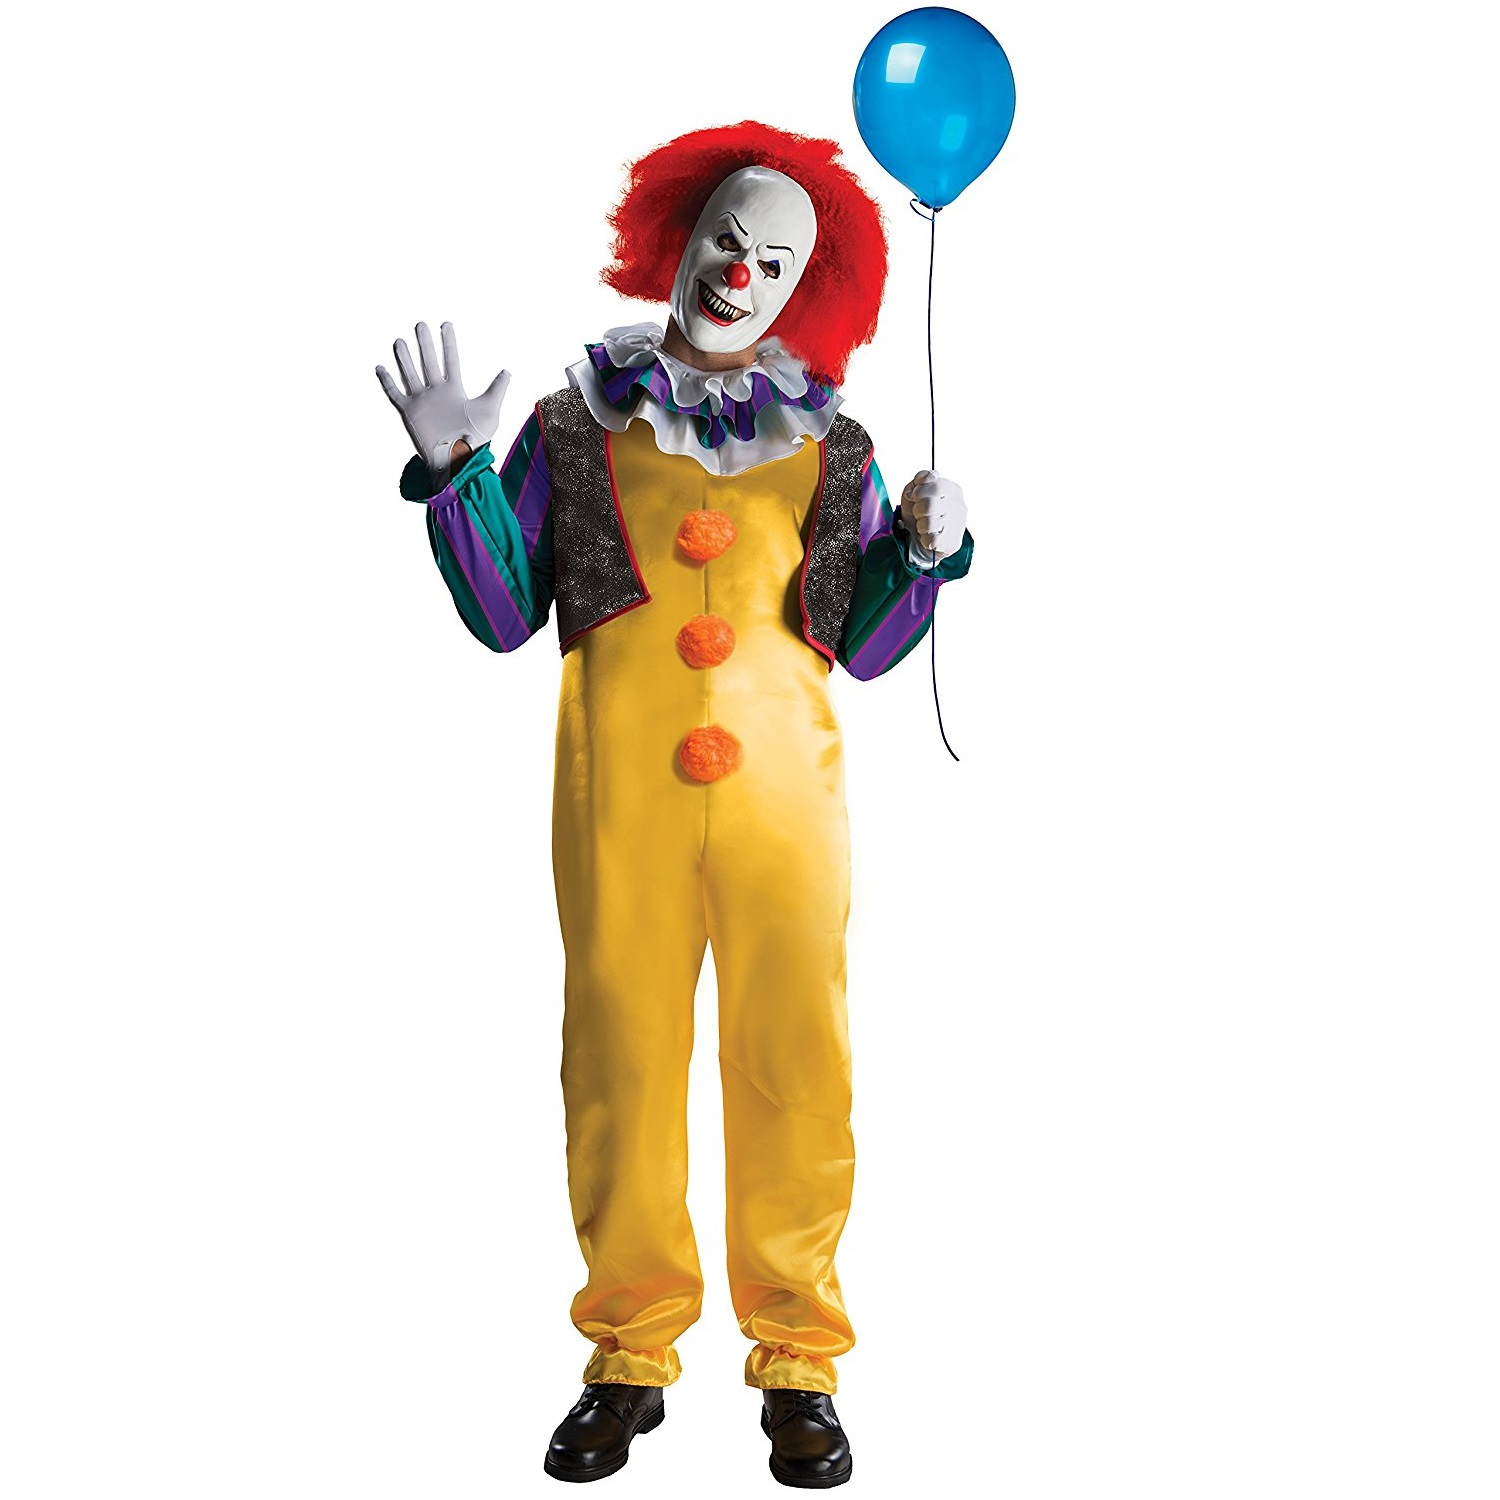 Costume de clown a d guisement halloween avant j - Idee deguisement halloween homme ...